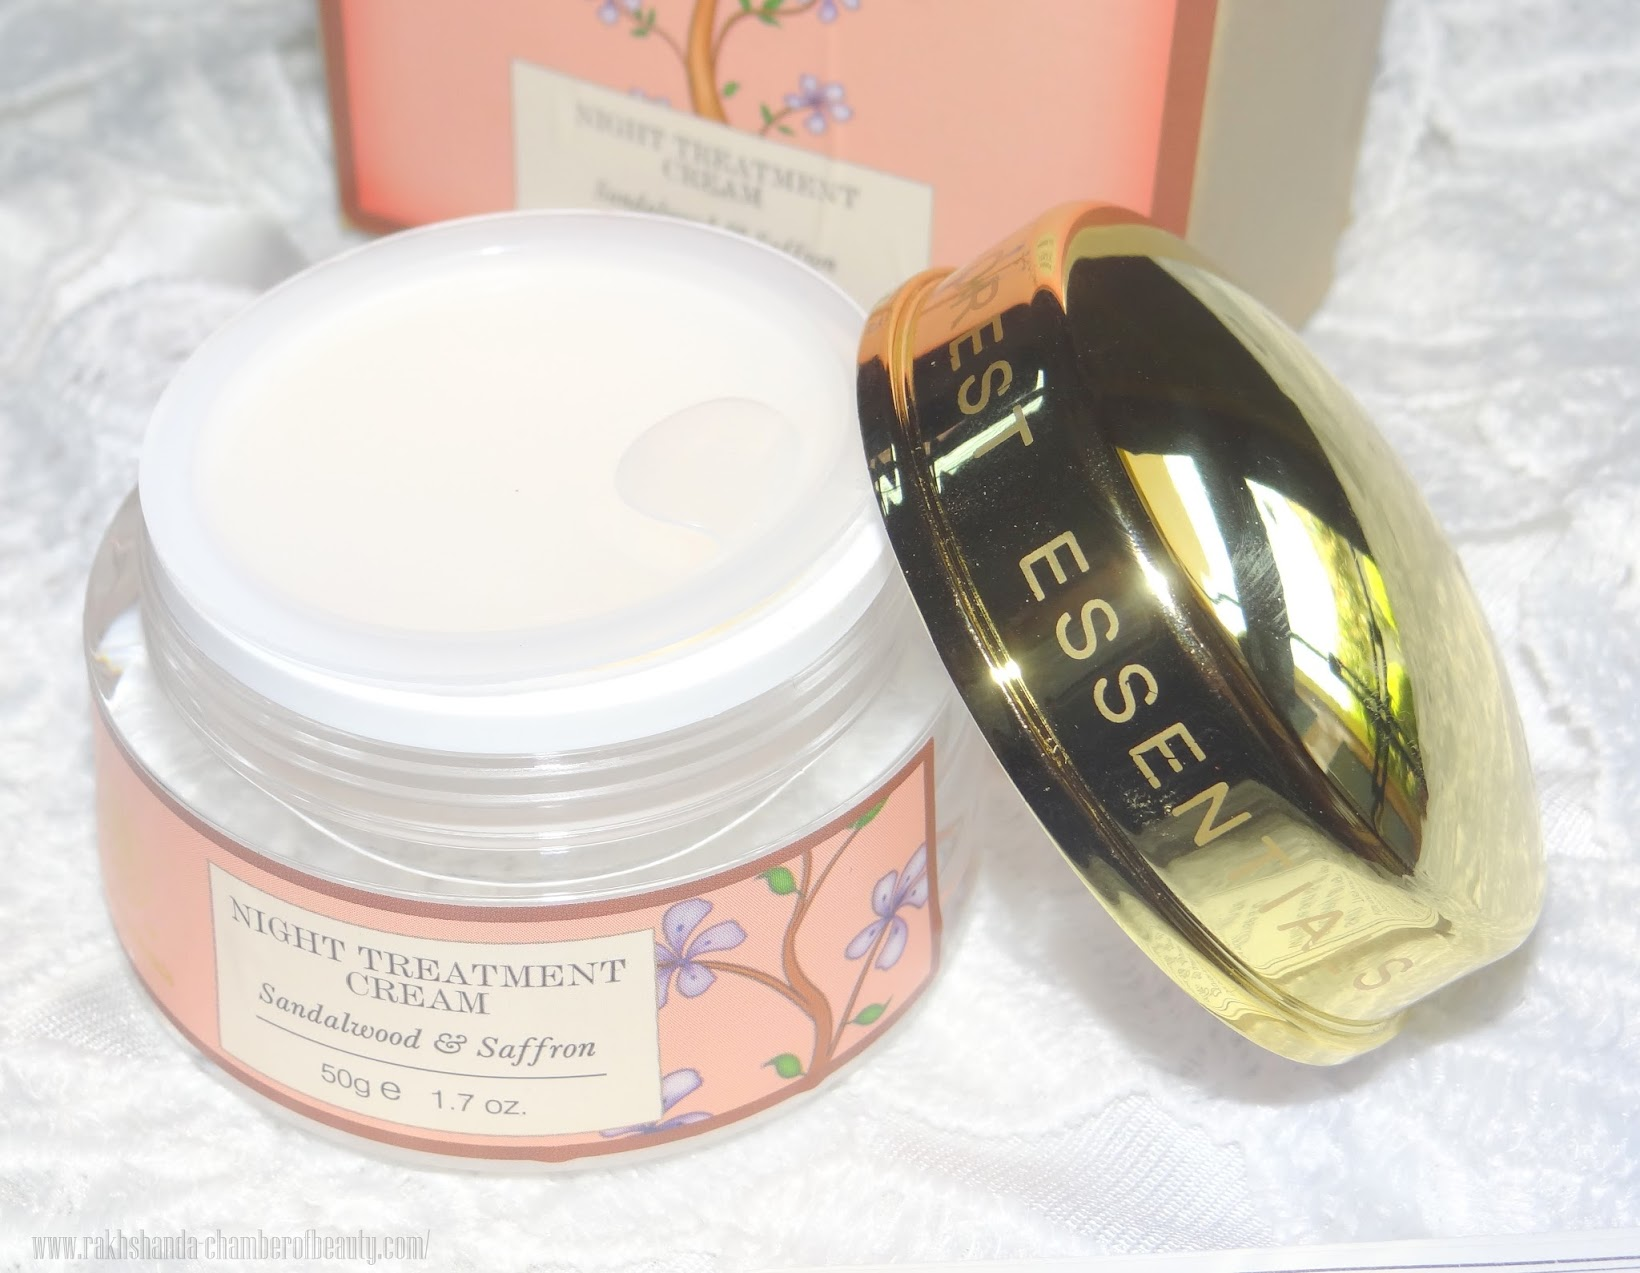 Forest Essentials Night Treatment Cream Sandalwood and Saffron- Review and Price, Indian Beauty Blogger, Chamber of Beauty